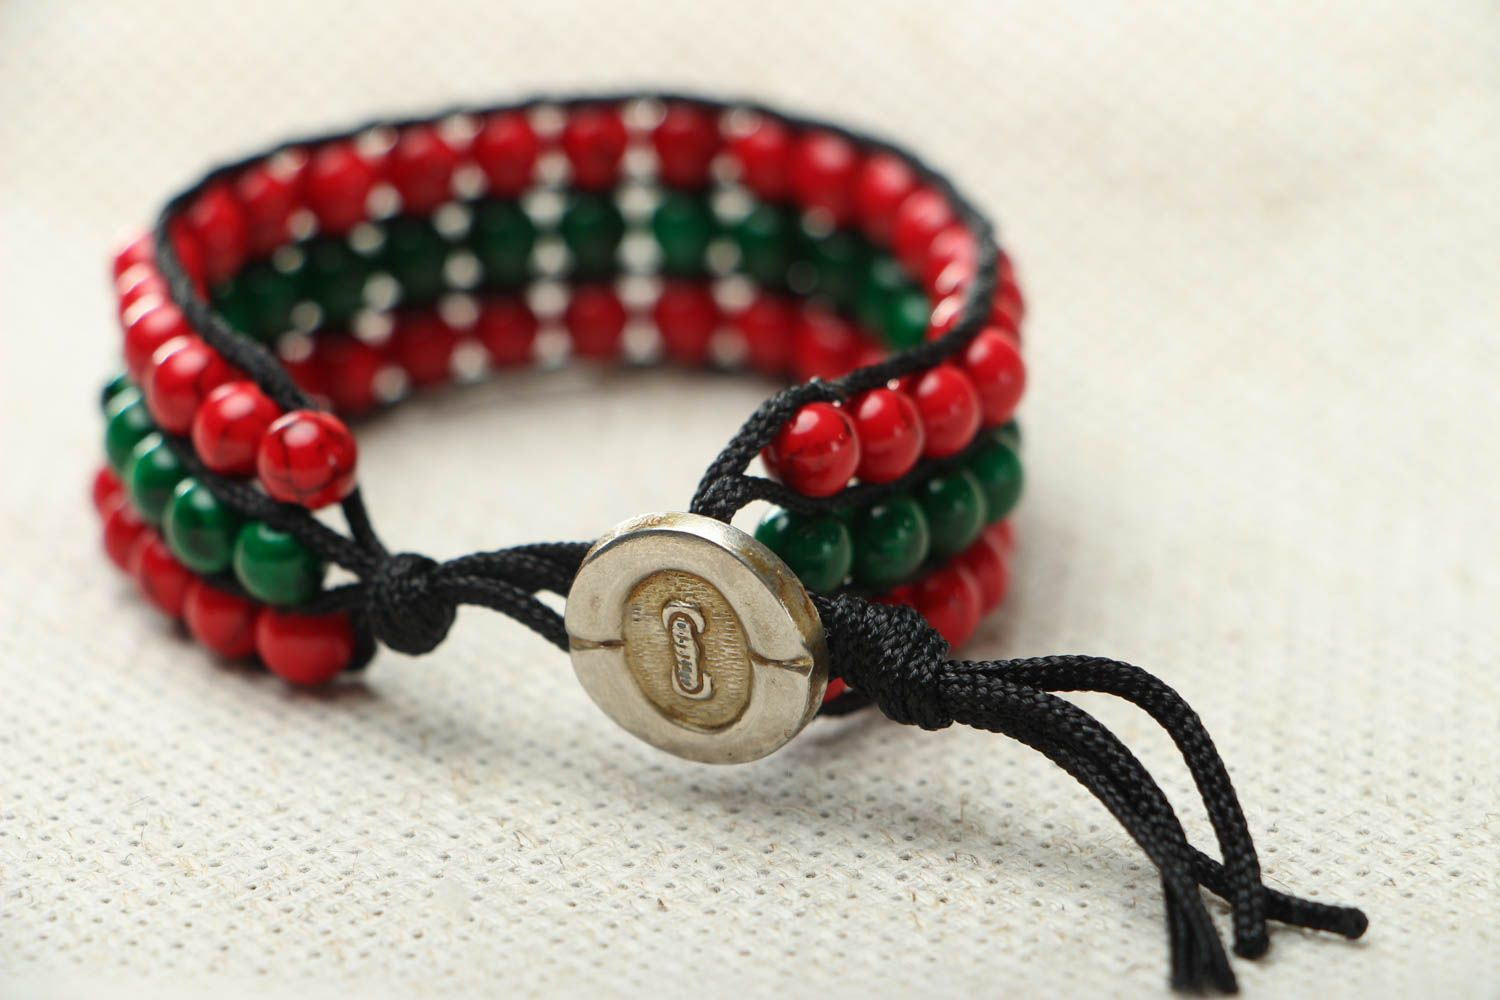 Bracelet with multi-colored beads photo 3